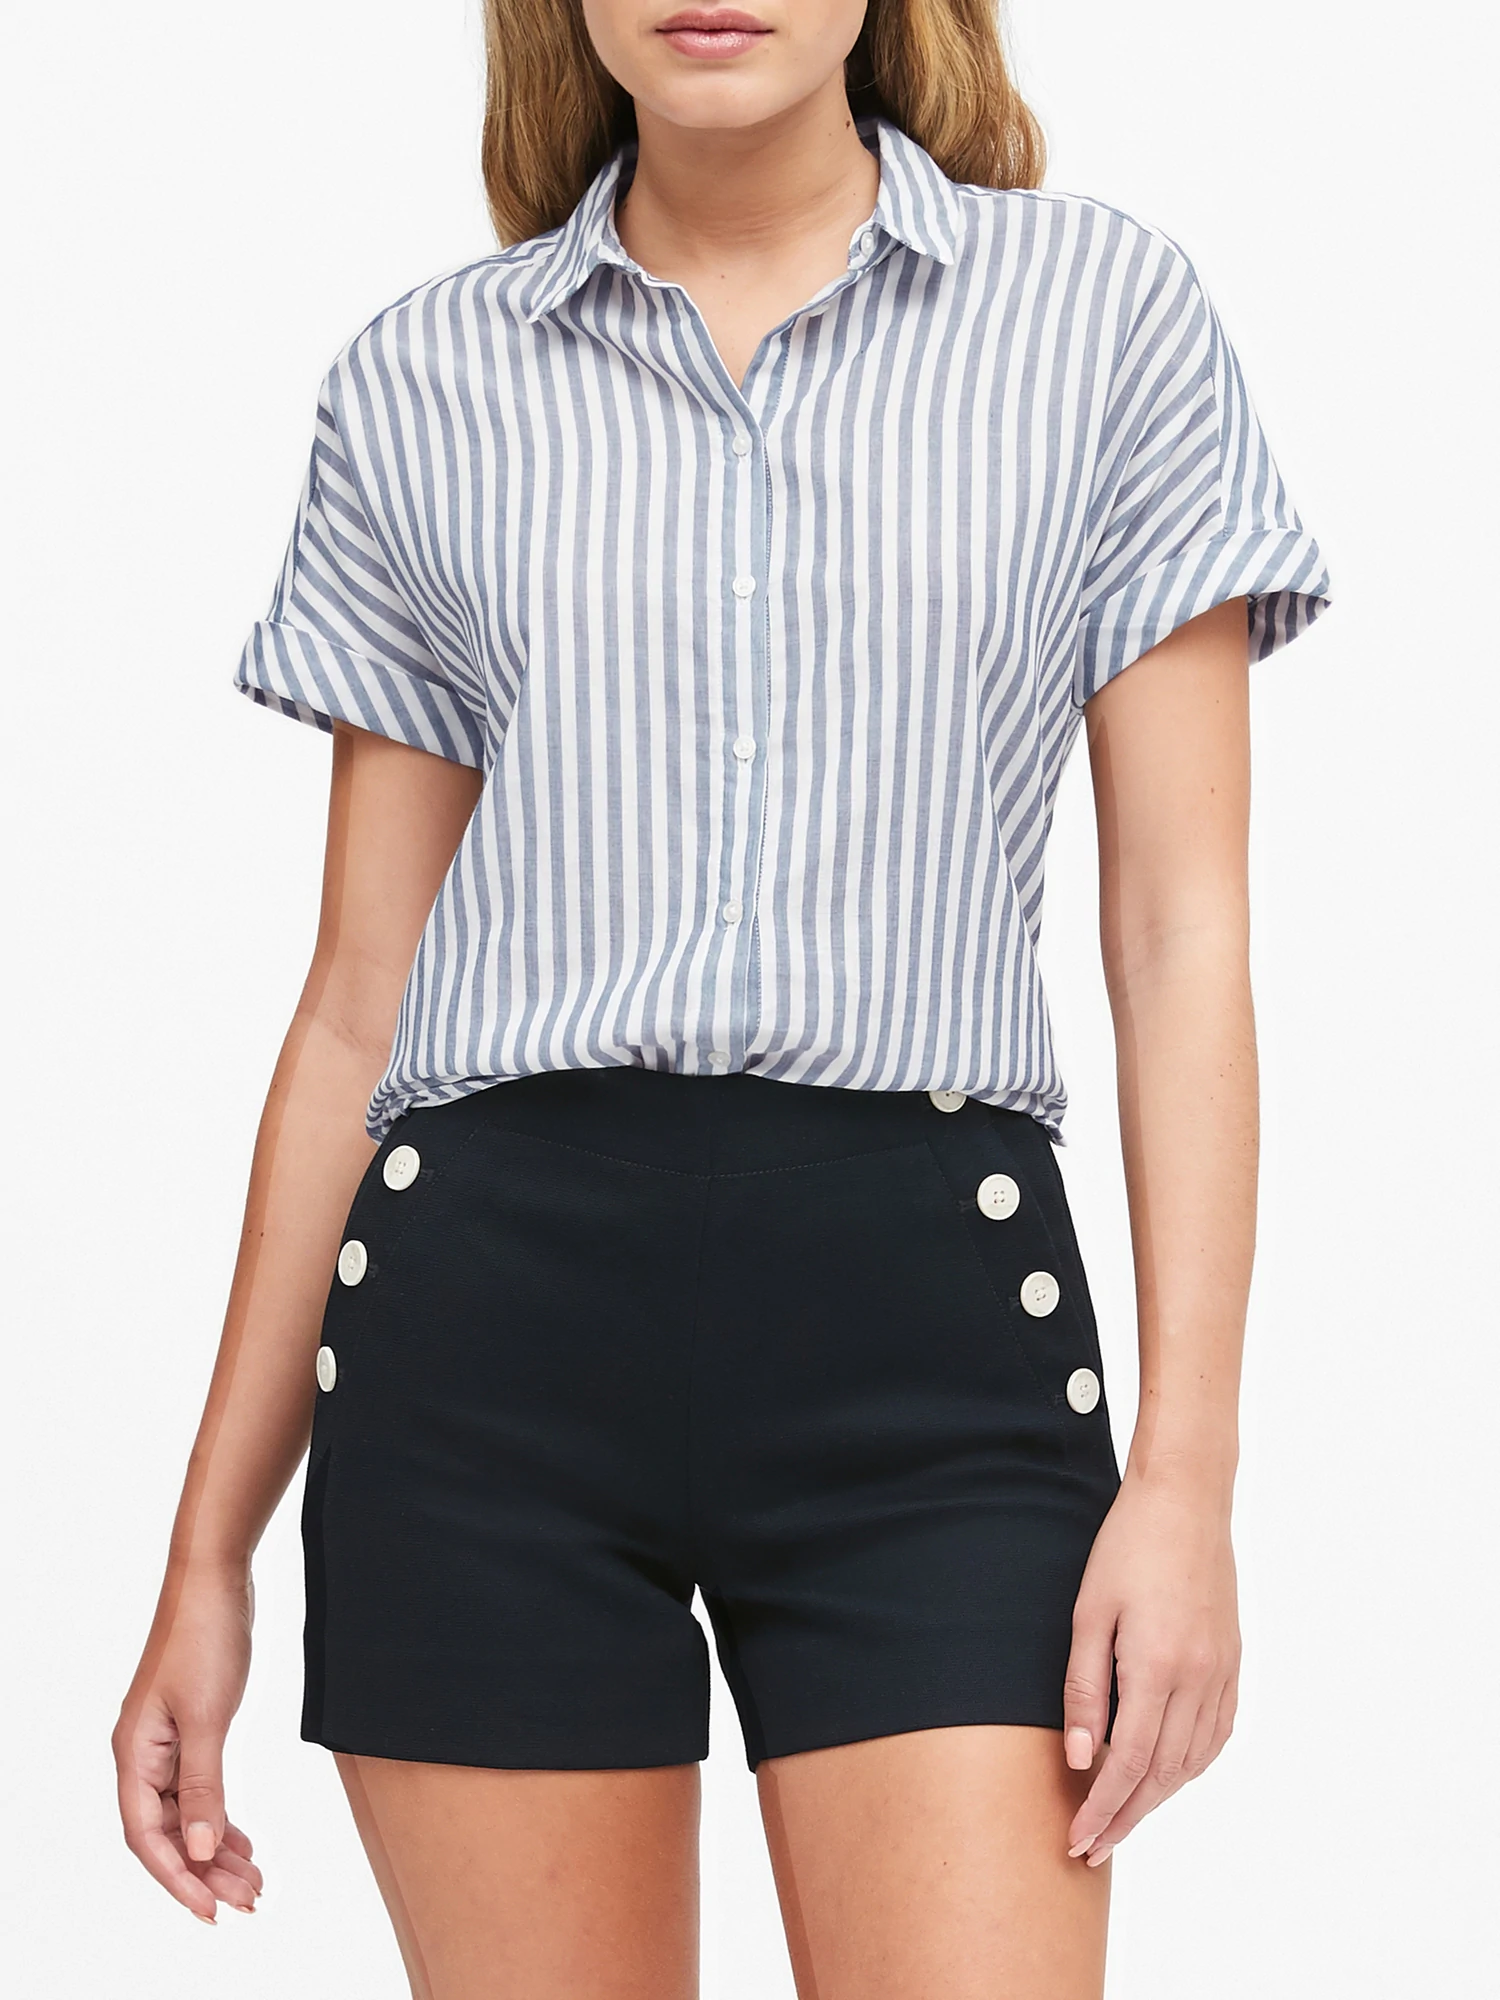 Model wearing a white and blue striped short sleeve shirt